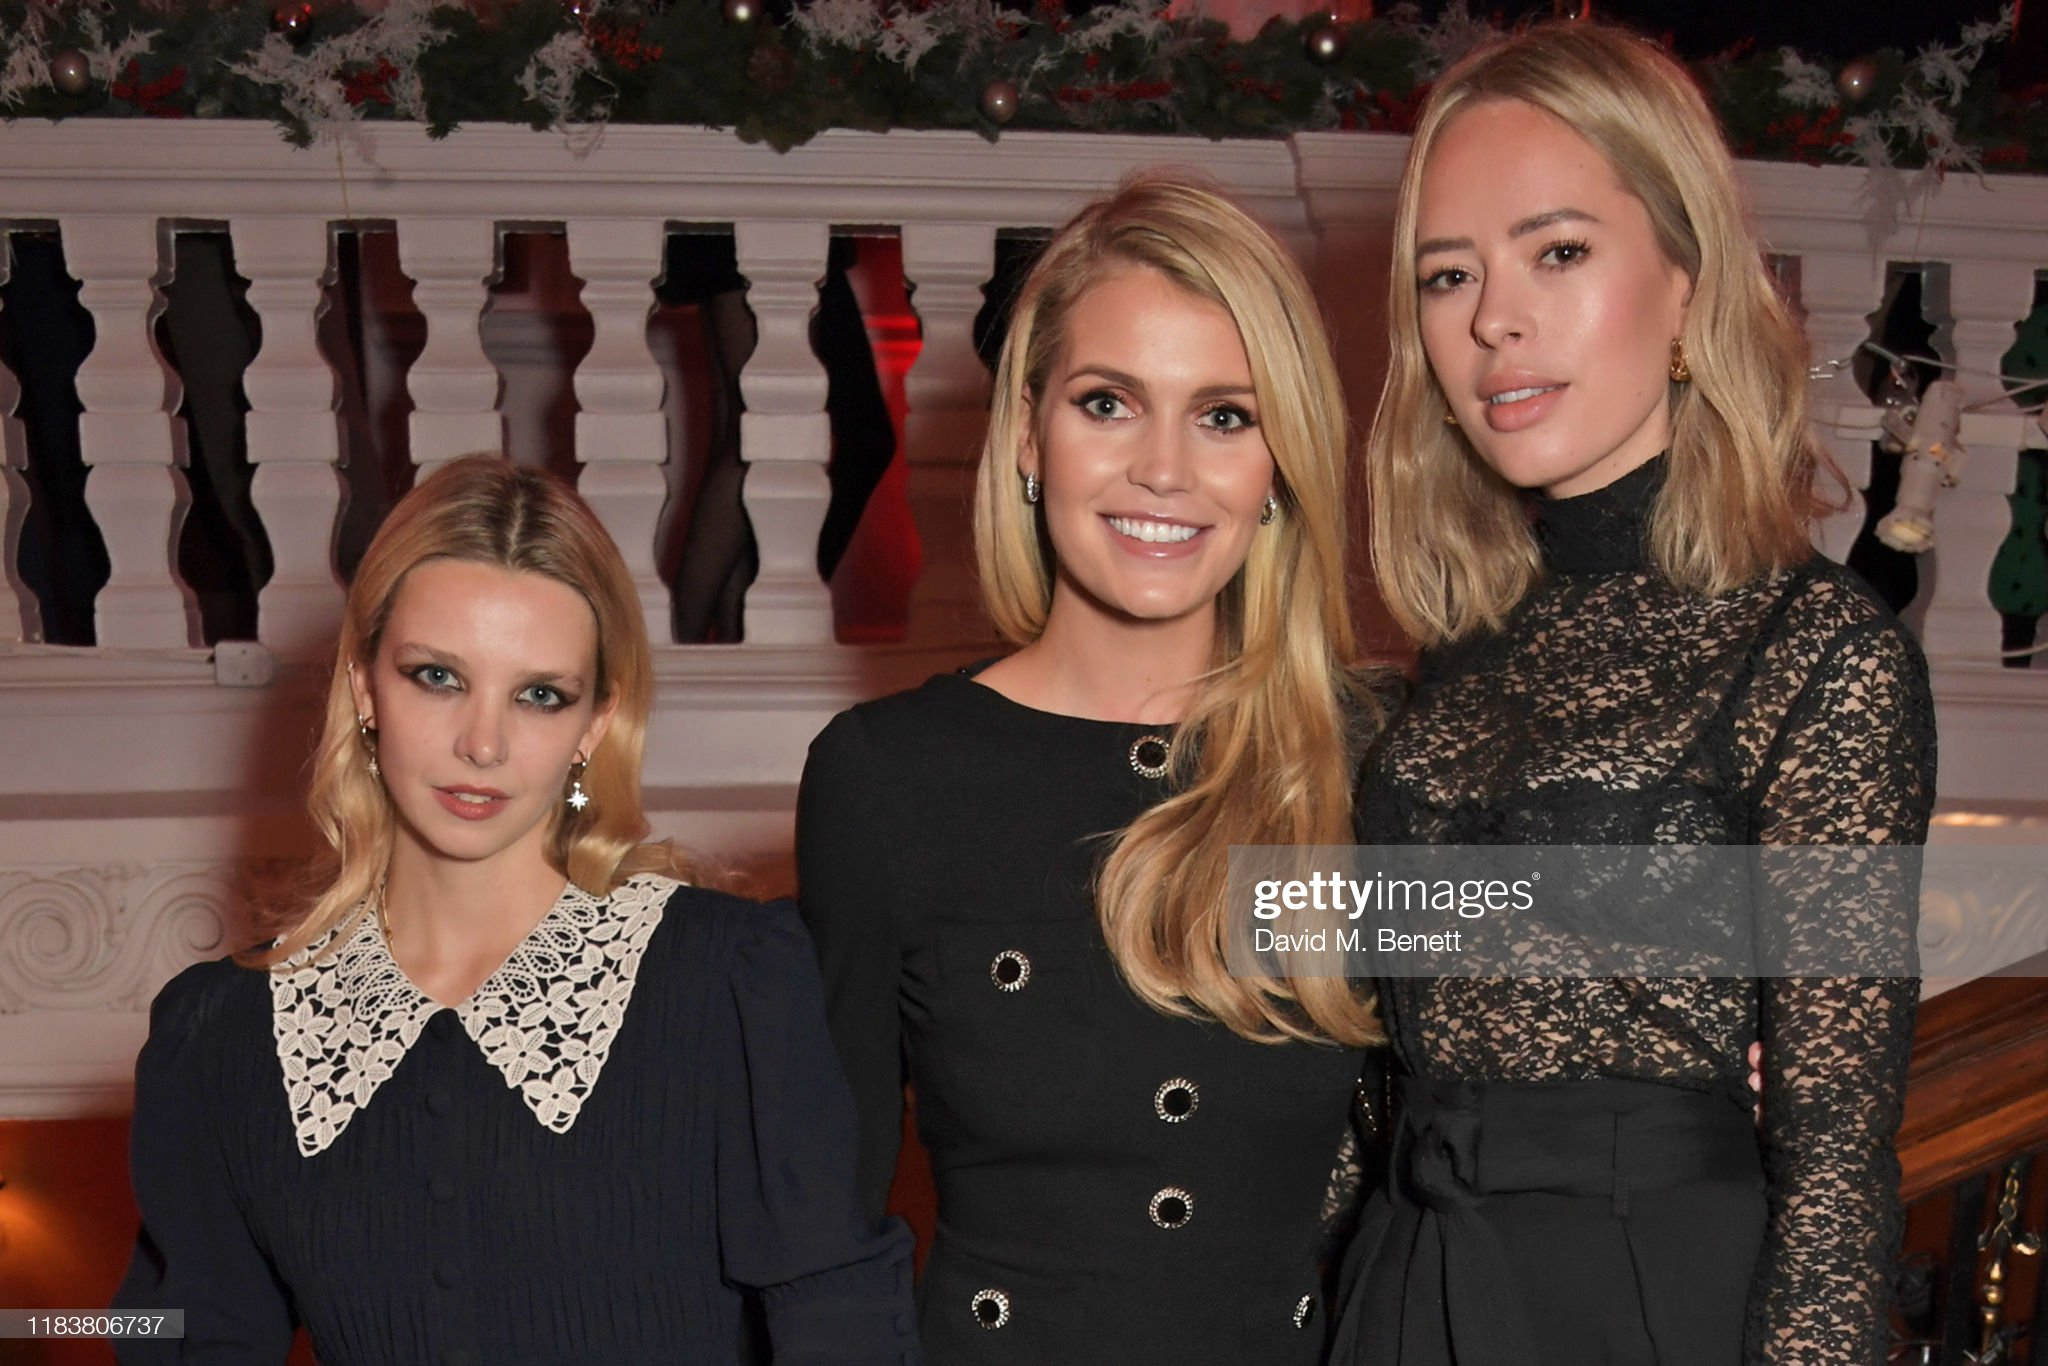 https://media.gettyimages.com/photos/greta-bellamacina-lady-kitty-spencer-and-tanya-burr-attend-the-launch-picture-id1183806737?s=2048x2048